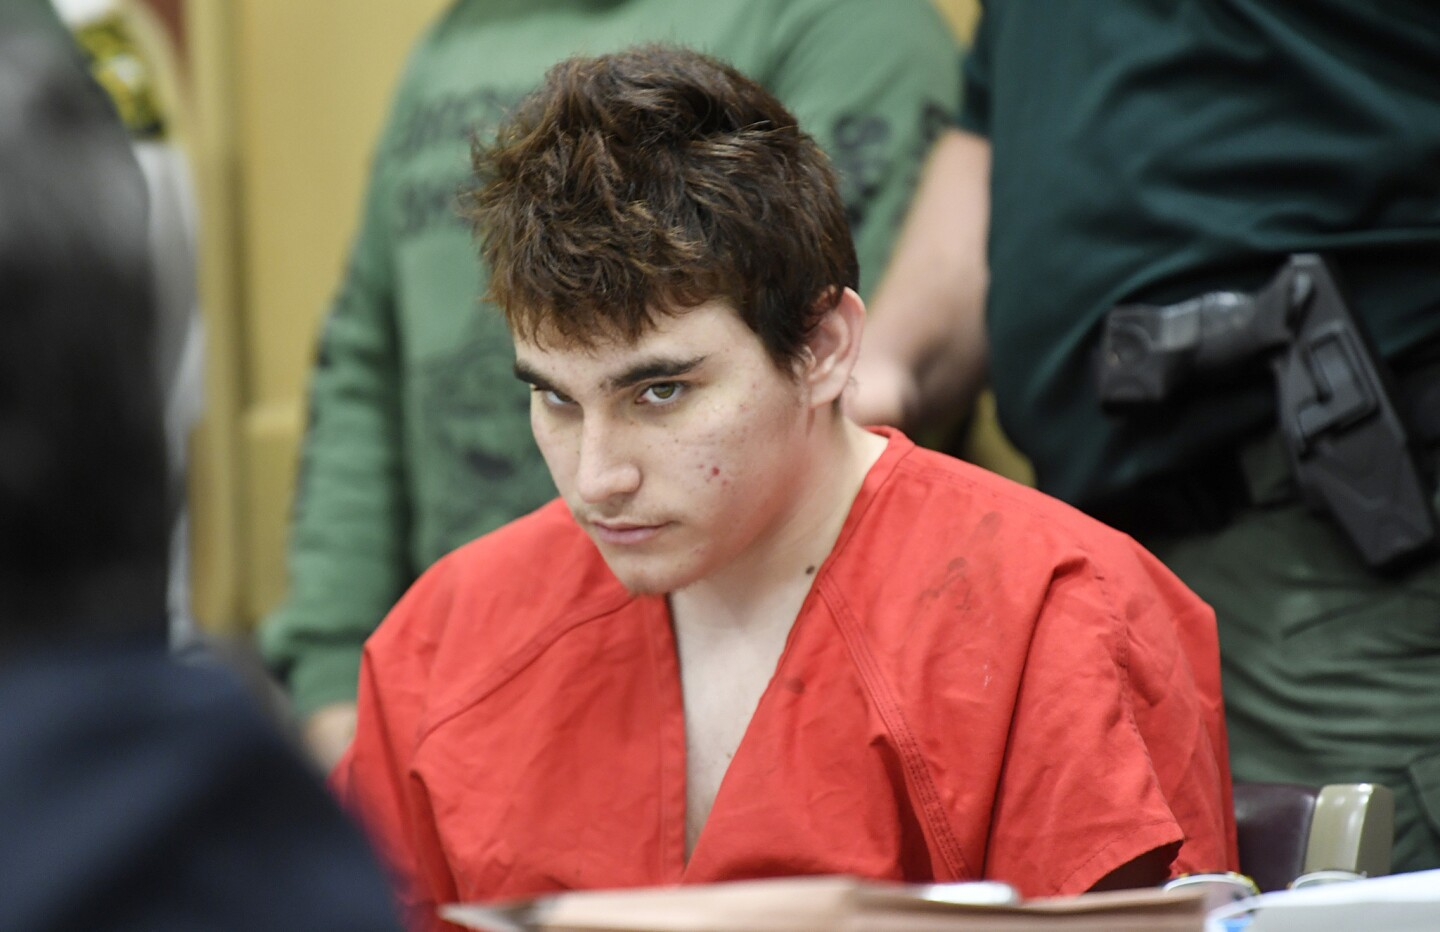 Florida school shooting suspect Nikolas Cruz quickly glances up at the prosecutors while in court back in court in front of Circuit Judge Elizabeth Scherer for a hearing to move forward the death penalty case Friday afternoon, April 27, 2018, in Fort Lauderdale, Fl. No trial date was set and Cruz was granted a waiver on Florida's speedy trial rule. The rule generally requires that a felony defendant go to trial within 175 days of arrest unless it's waived. Cruz, 19, is charged with 17 counts of murder and 17 counts of attempted murder in the February 14, 2018 school shooting at Marjory Stoneman Douglas High School in Parkland, Fl. Cruz's attorney has said he would plead guilty if guaranteed life without parole, but prosecutors are seeking the death penalty.